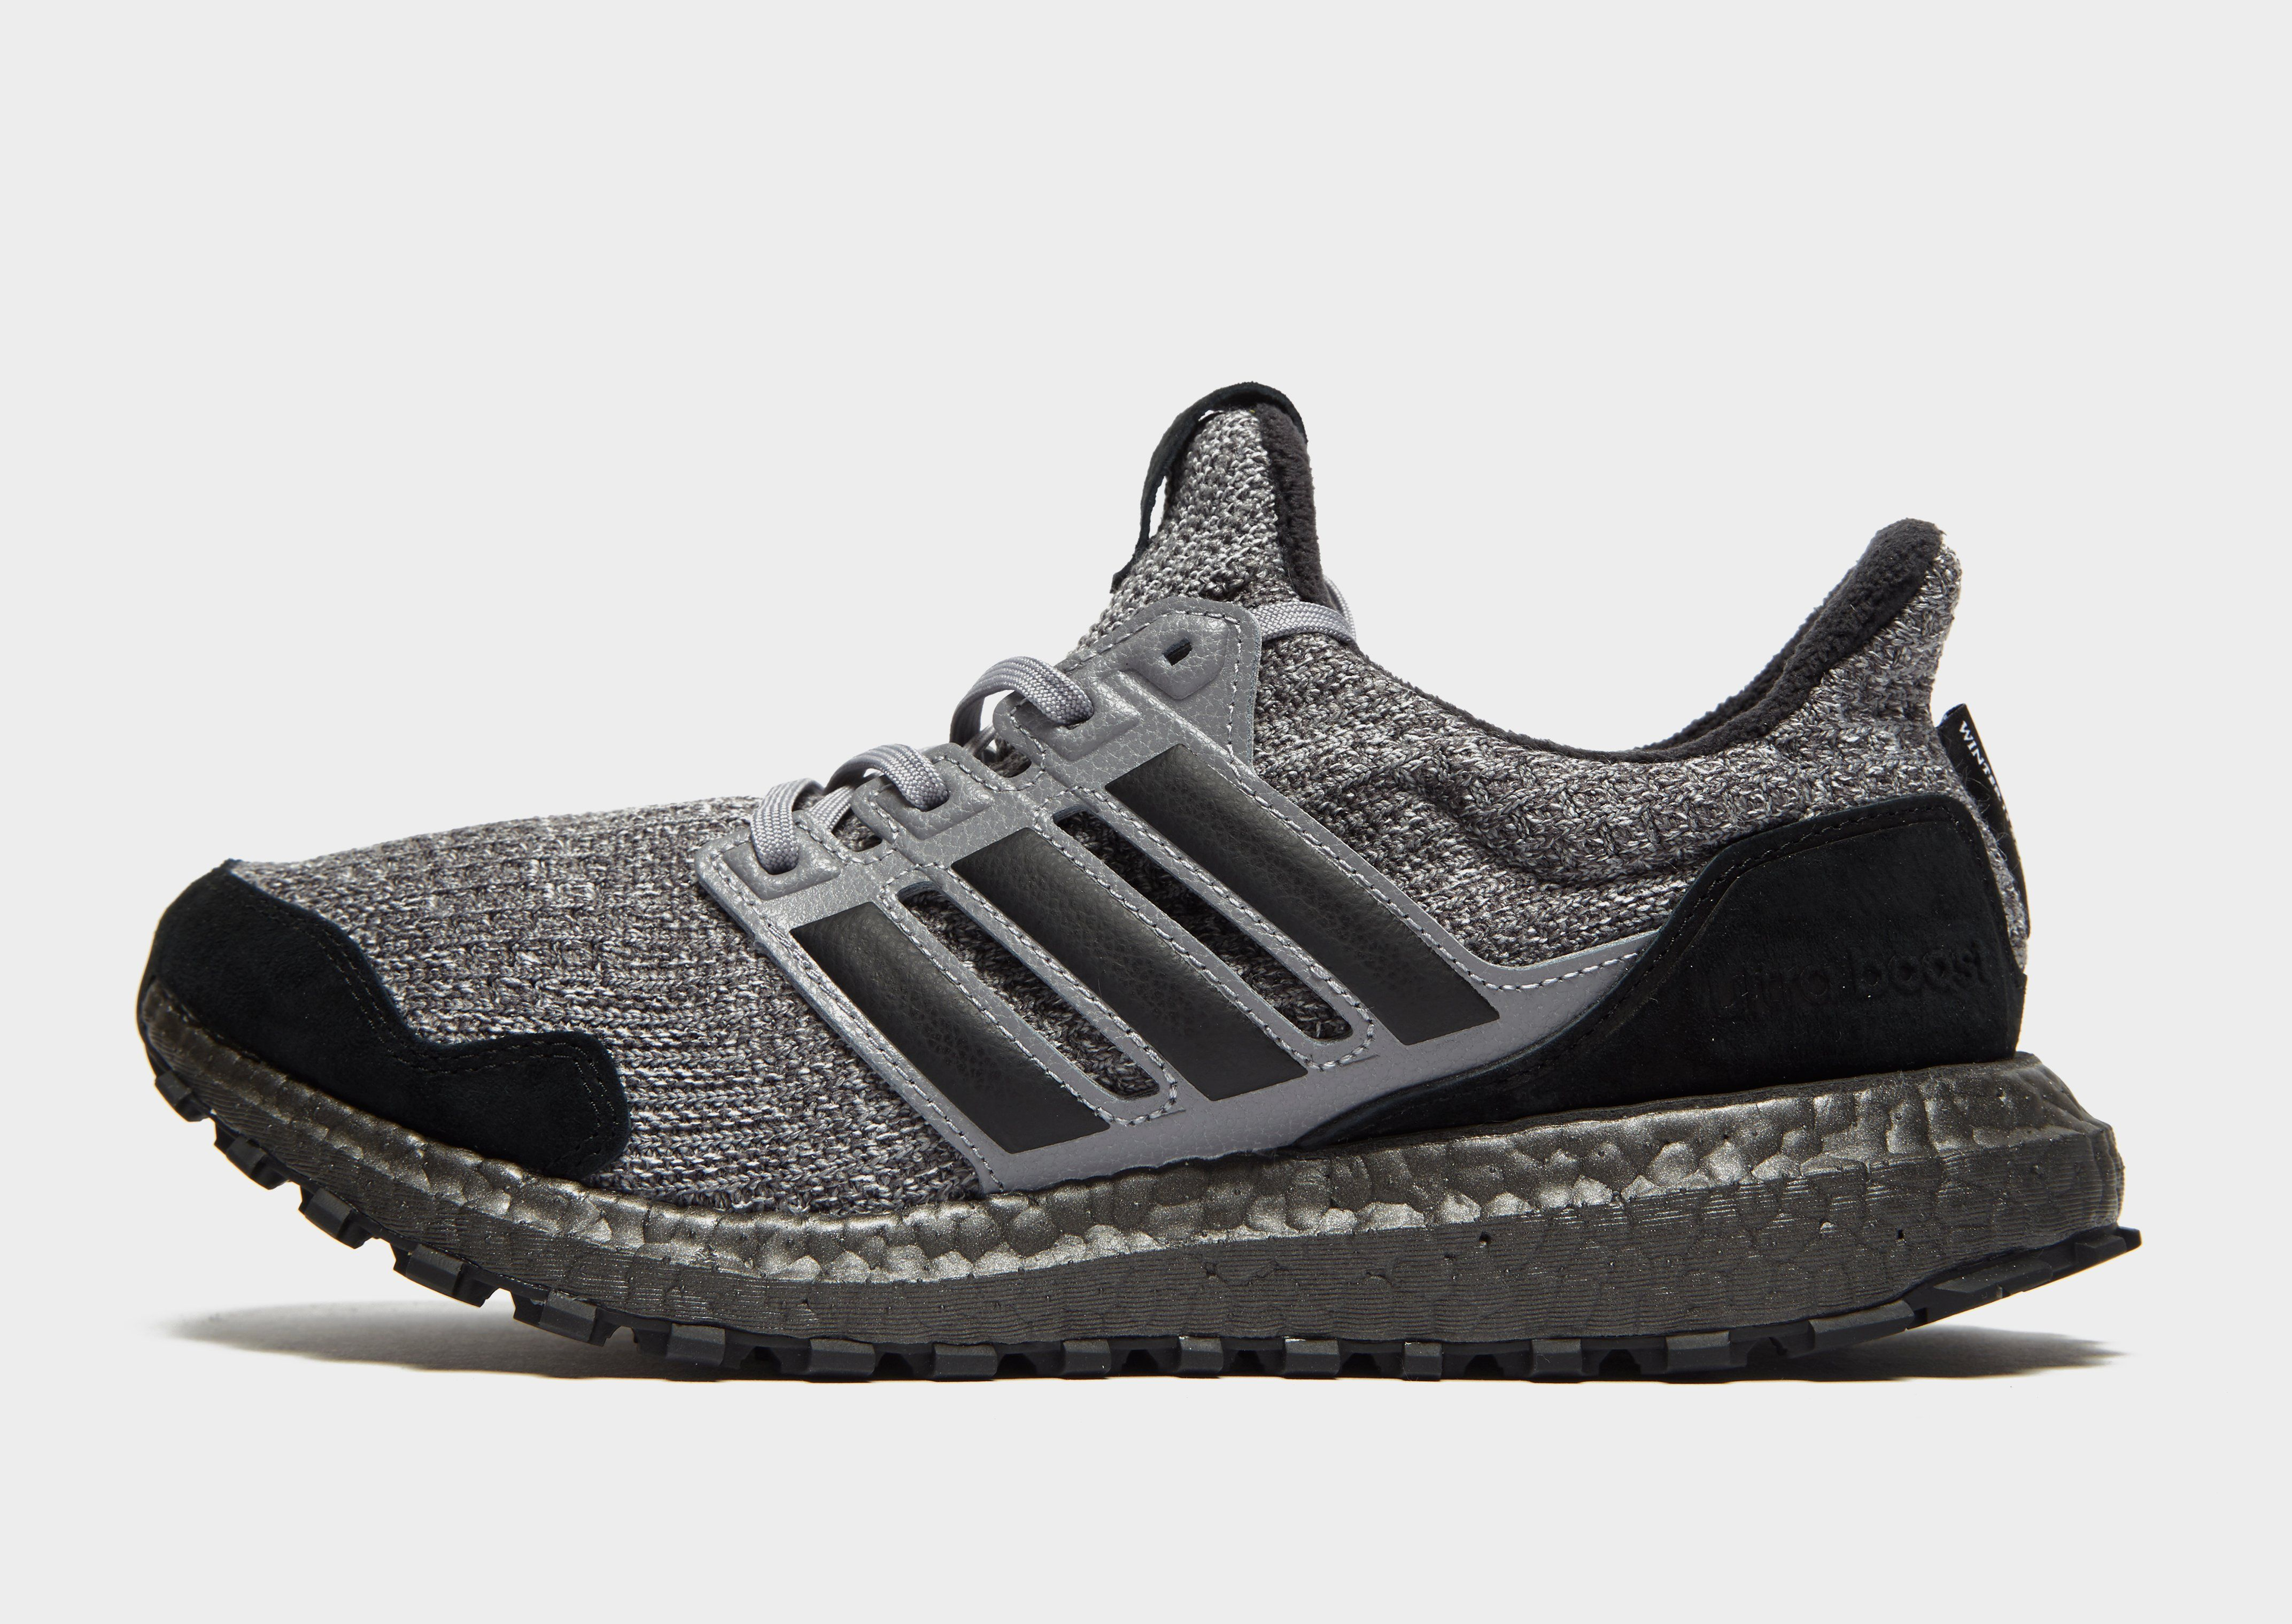 12d0255ef4430 ADIDAS Ultraboost x Game Of Thrones Shoes